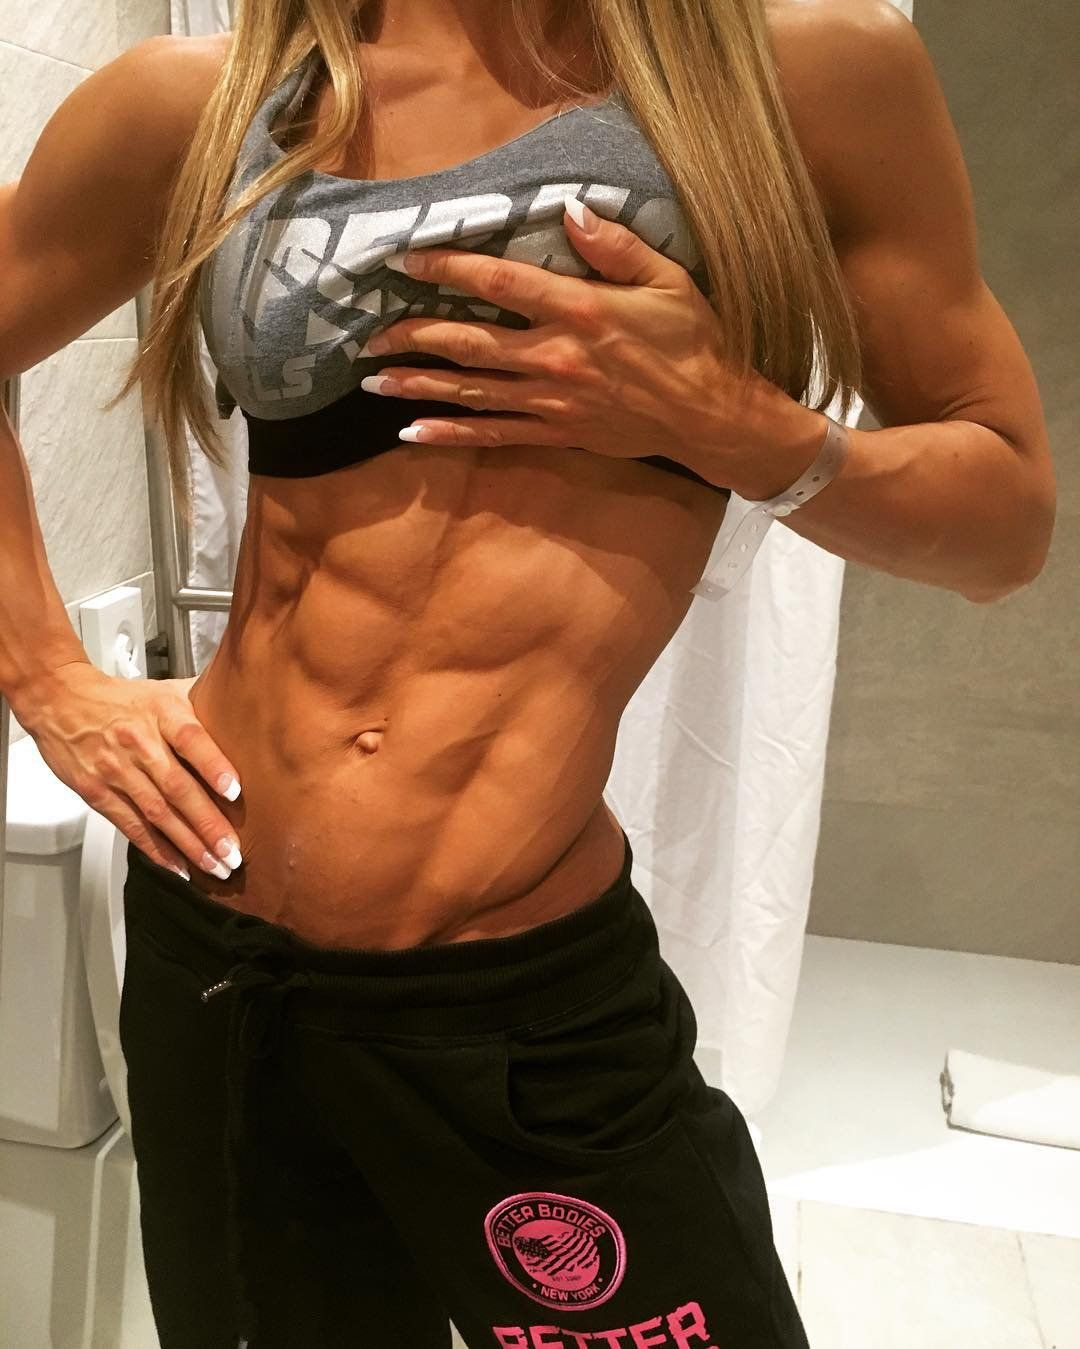 Catharina wahl fitness models female physically fit